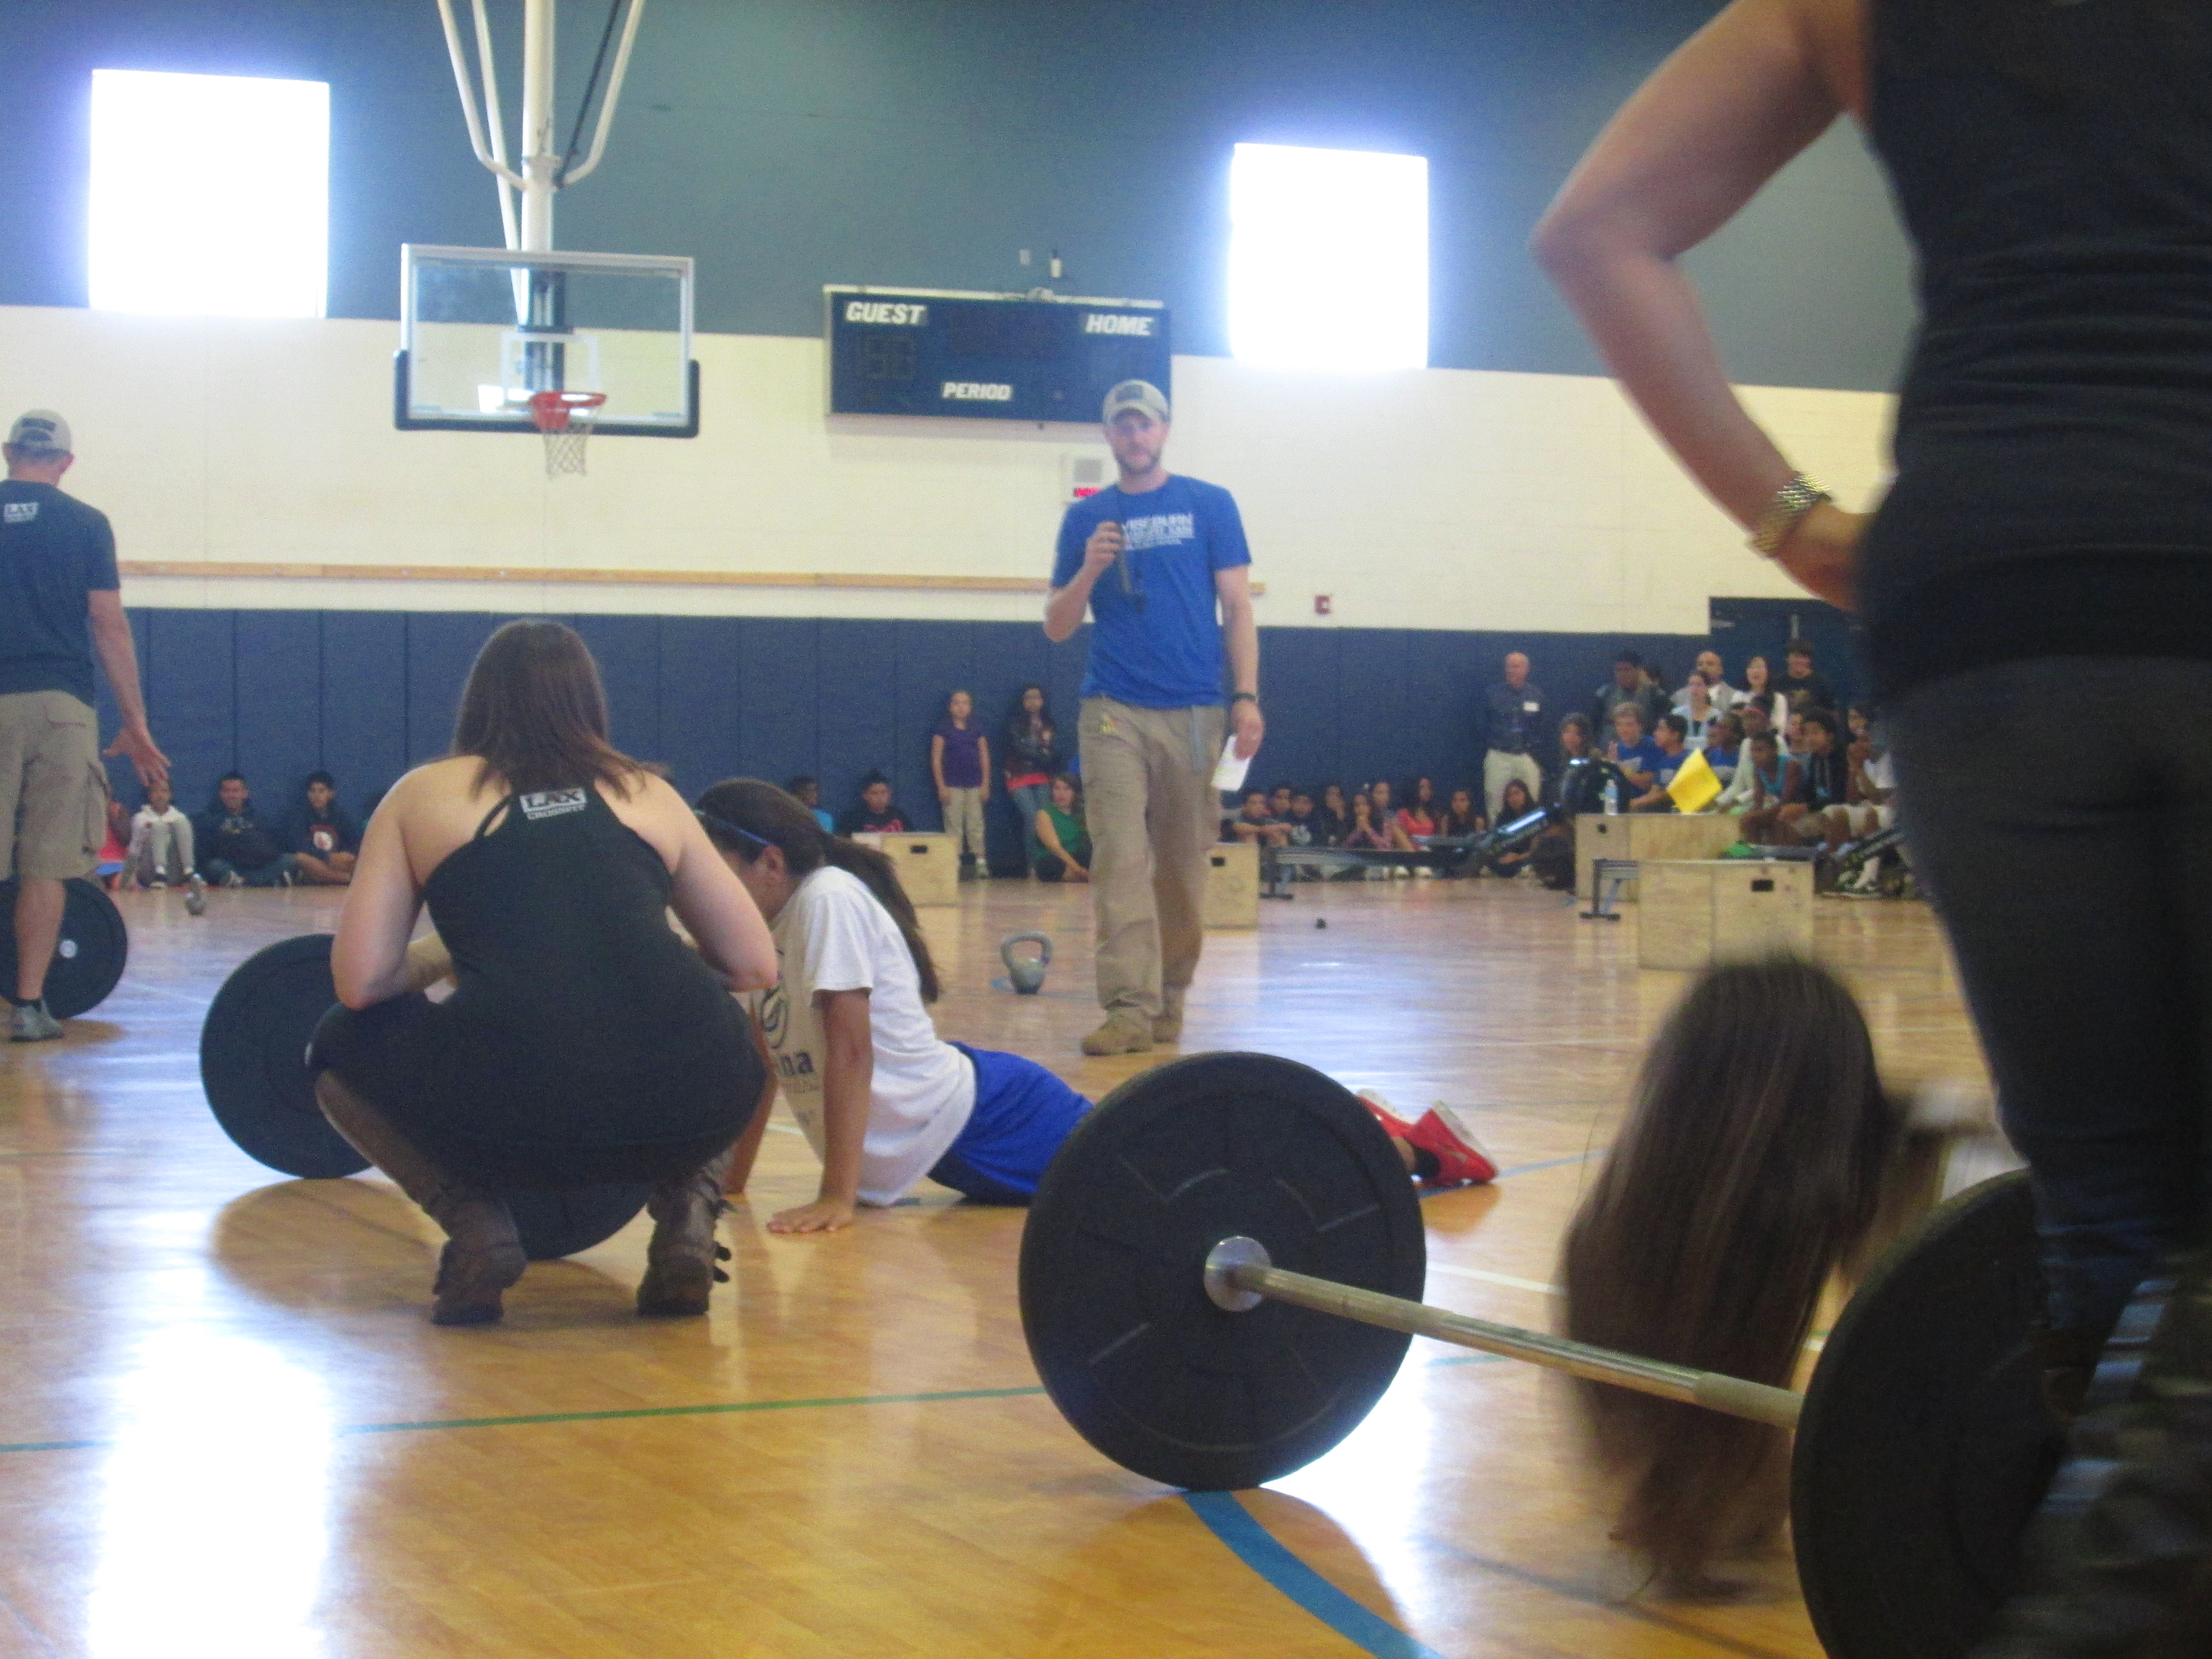 A floor-level shot of a basketball court, on which students are doing push-ups in front of large barbell weights, each being supervised by a female instructor. Students line the outside walls of the court, and a young male gym teacher in a blue t-shirt is walking towards the camera, wearing a whistle.